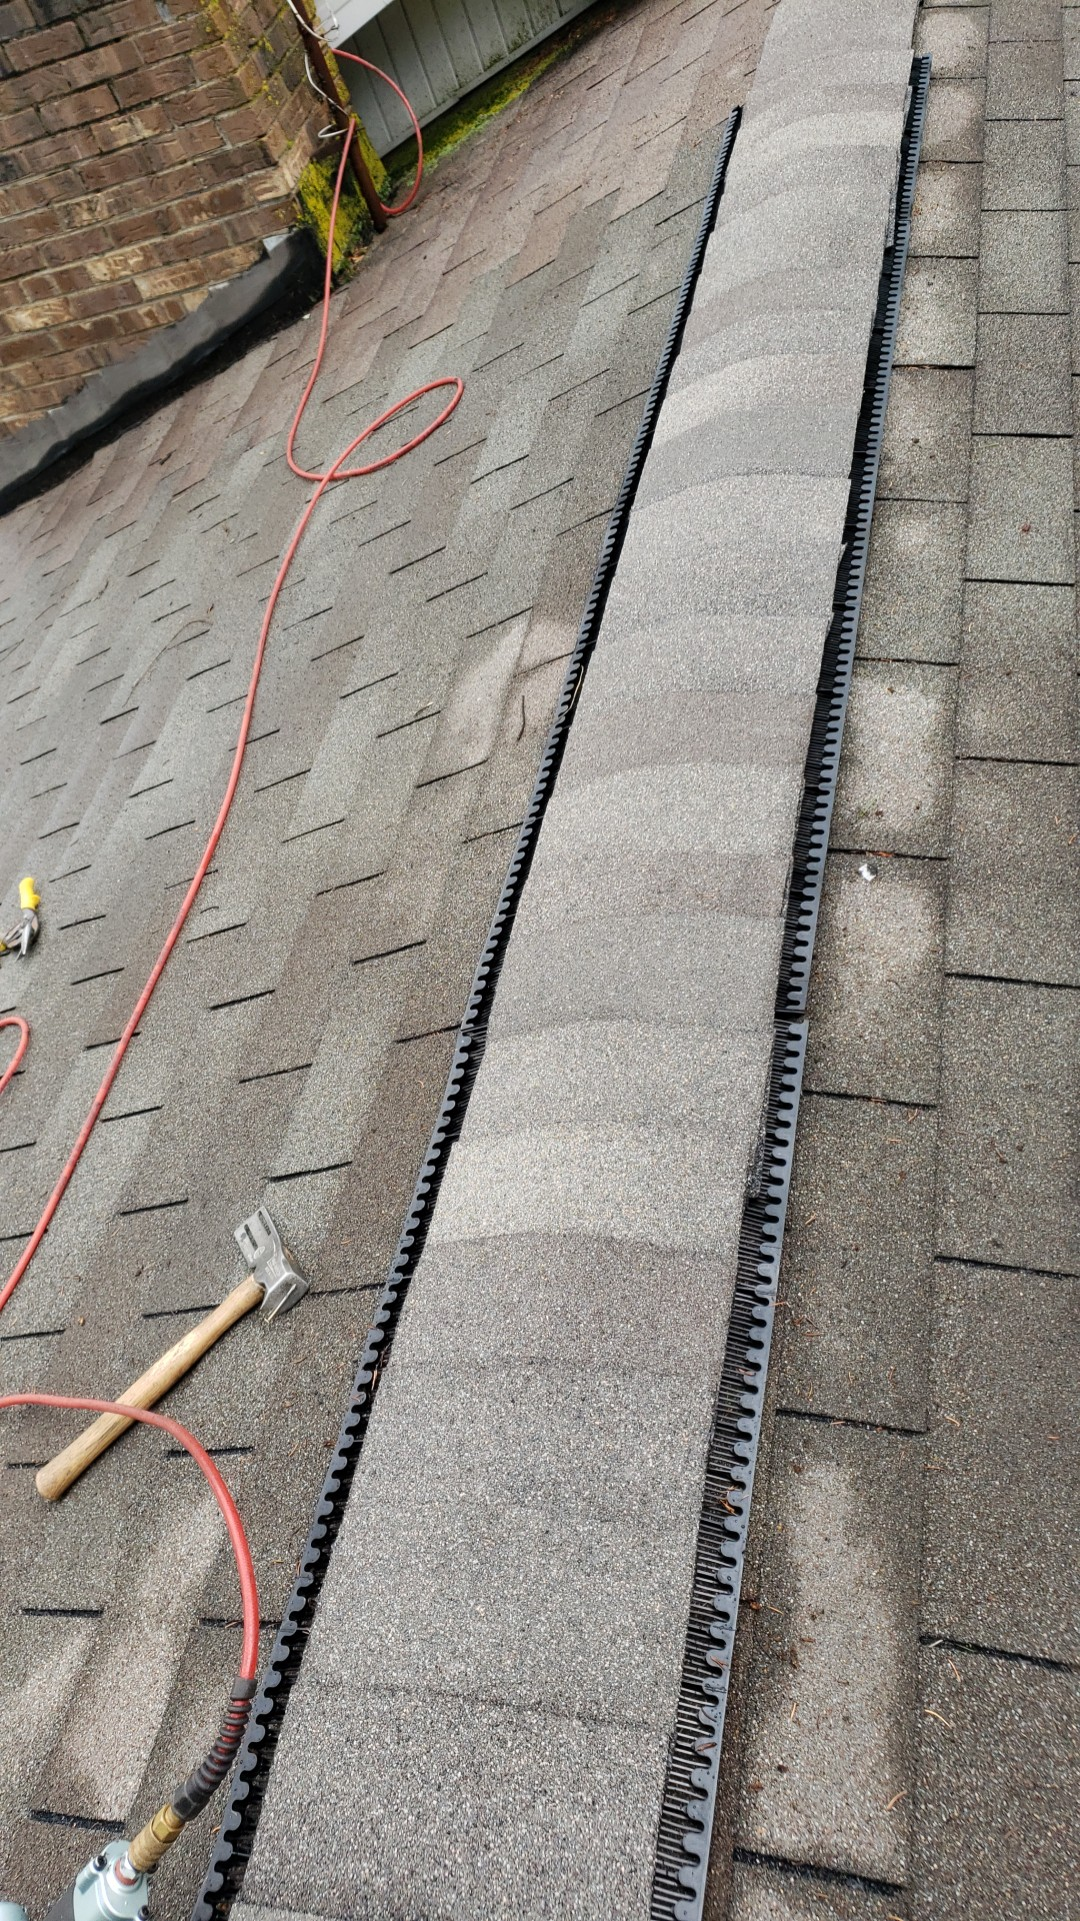 This is the image of the newly installed ridge vent and ridge cap shingles.